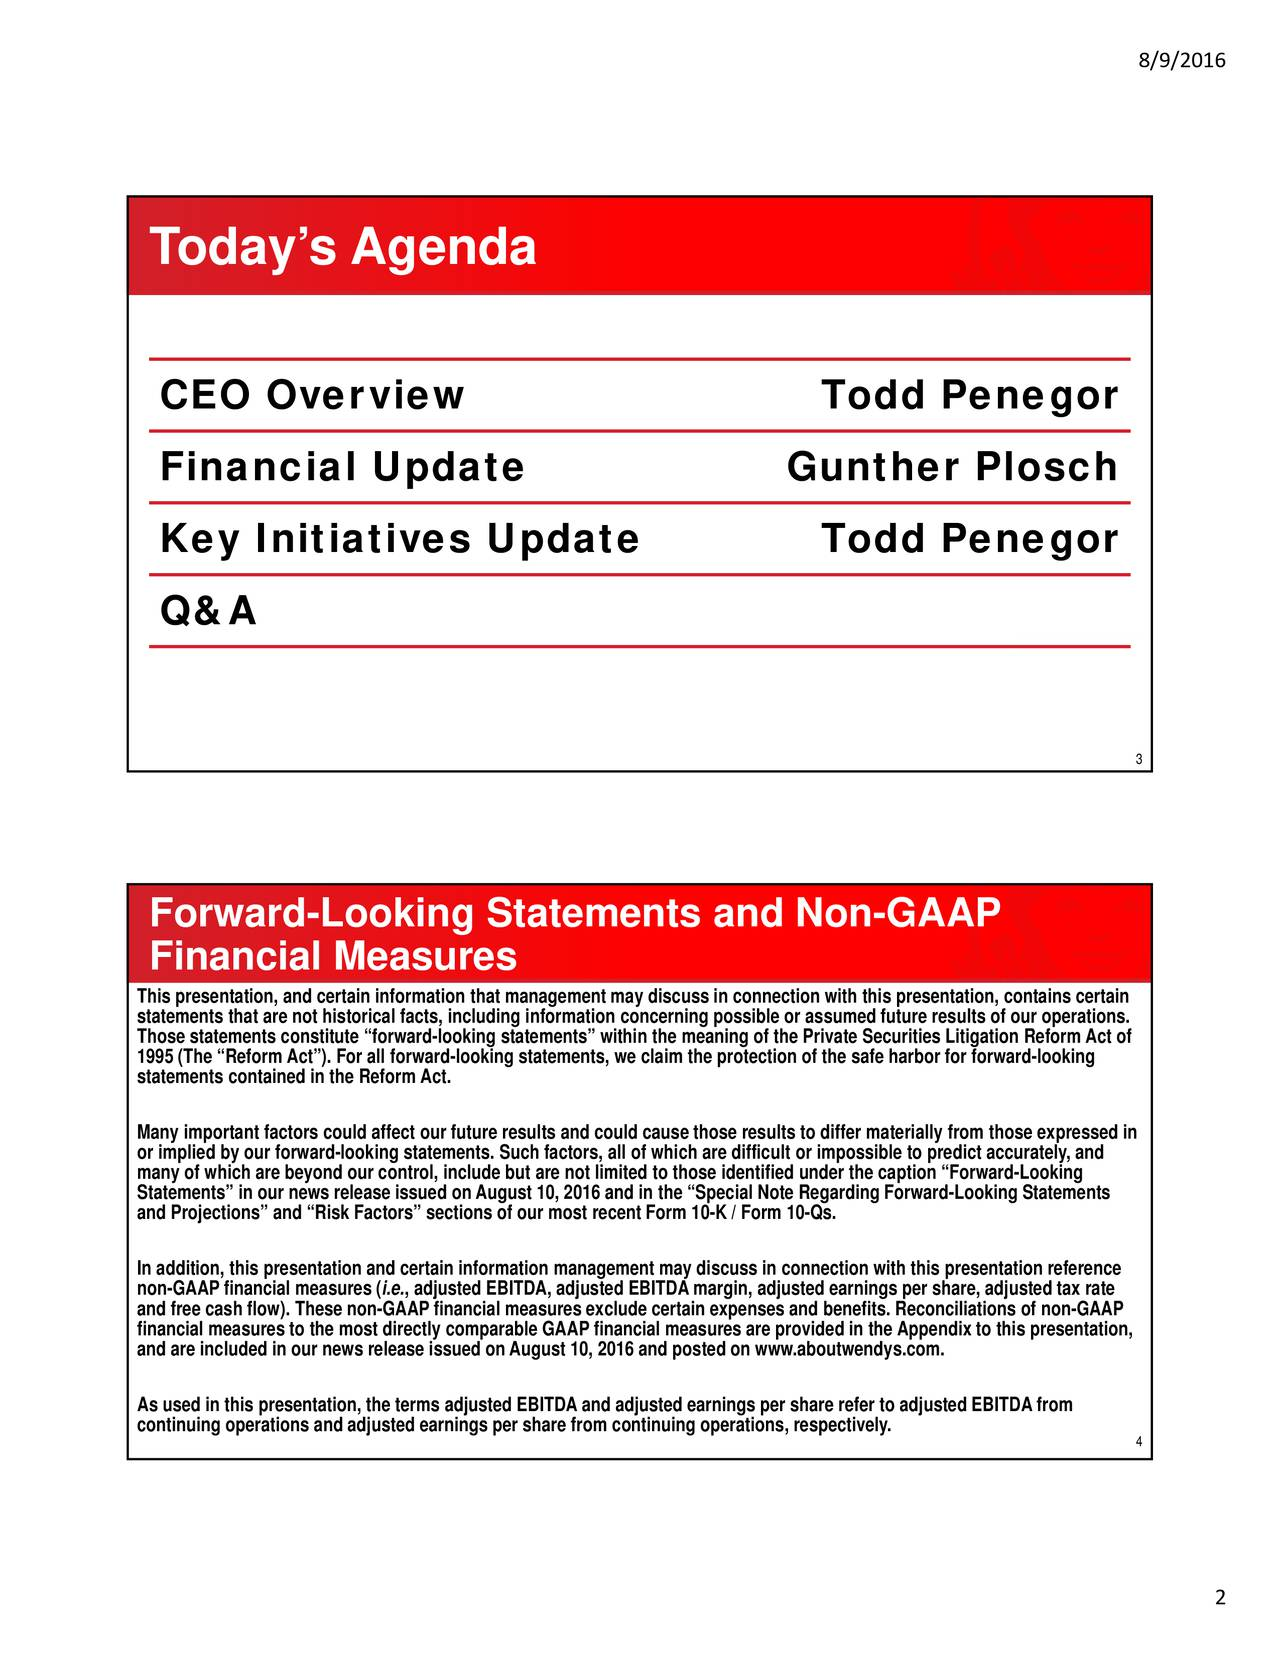 Todays Agenda CEO Overview Todd Penegor Financial Update Gunther Plosch Key Initiatives Update Todd Penegor Q&A 3 Forward-Looking Statements and Non-GAAP Financial Measures This presentation, and certain information that management may discuss in connection with this presentation, contains certain Those statements constitute forward-looking statements within the meaning of the Private Securities Litigation Reform Act ofs. 1995 (The Reform Act). For all forward-looking statements, we claim the protection of the safe harbor for forward-looking statements contained in the Reform Act. Many important factors could affect our future results and could cause those results to differ materially from those expressed in or implied by our forward-looking statements. Such factors, all of which are difficult or impossible to predict accurately, and Statements in our news release issued on August 10, 2016 and in the Special Note Regarding Forward-Looking Statementsg and Projections and Risk Factors sections of our most recent Form 10-K / Form 10-Qs. In addition, this presentation and certain information management may discuss in connection with this presentation reference non-GAAP financial measures (i.e., adjusted EBITDA, adjusted EBITDA margin, adjusted earnings per share, adjusted tax rate and free cash flow). These non-GAAP financial measures exclude certain expenses and benefits. Reconciliations of non-GAAP and are included in our news release issued on August 10, 2016 and posted on www.aboutwendys.com.pendix to this presentation, continuing operations and adjusted earnings per share from continuing operations, respectively.o adjusted EBITDA from 4 2